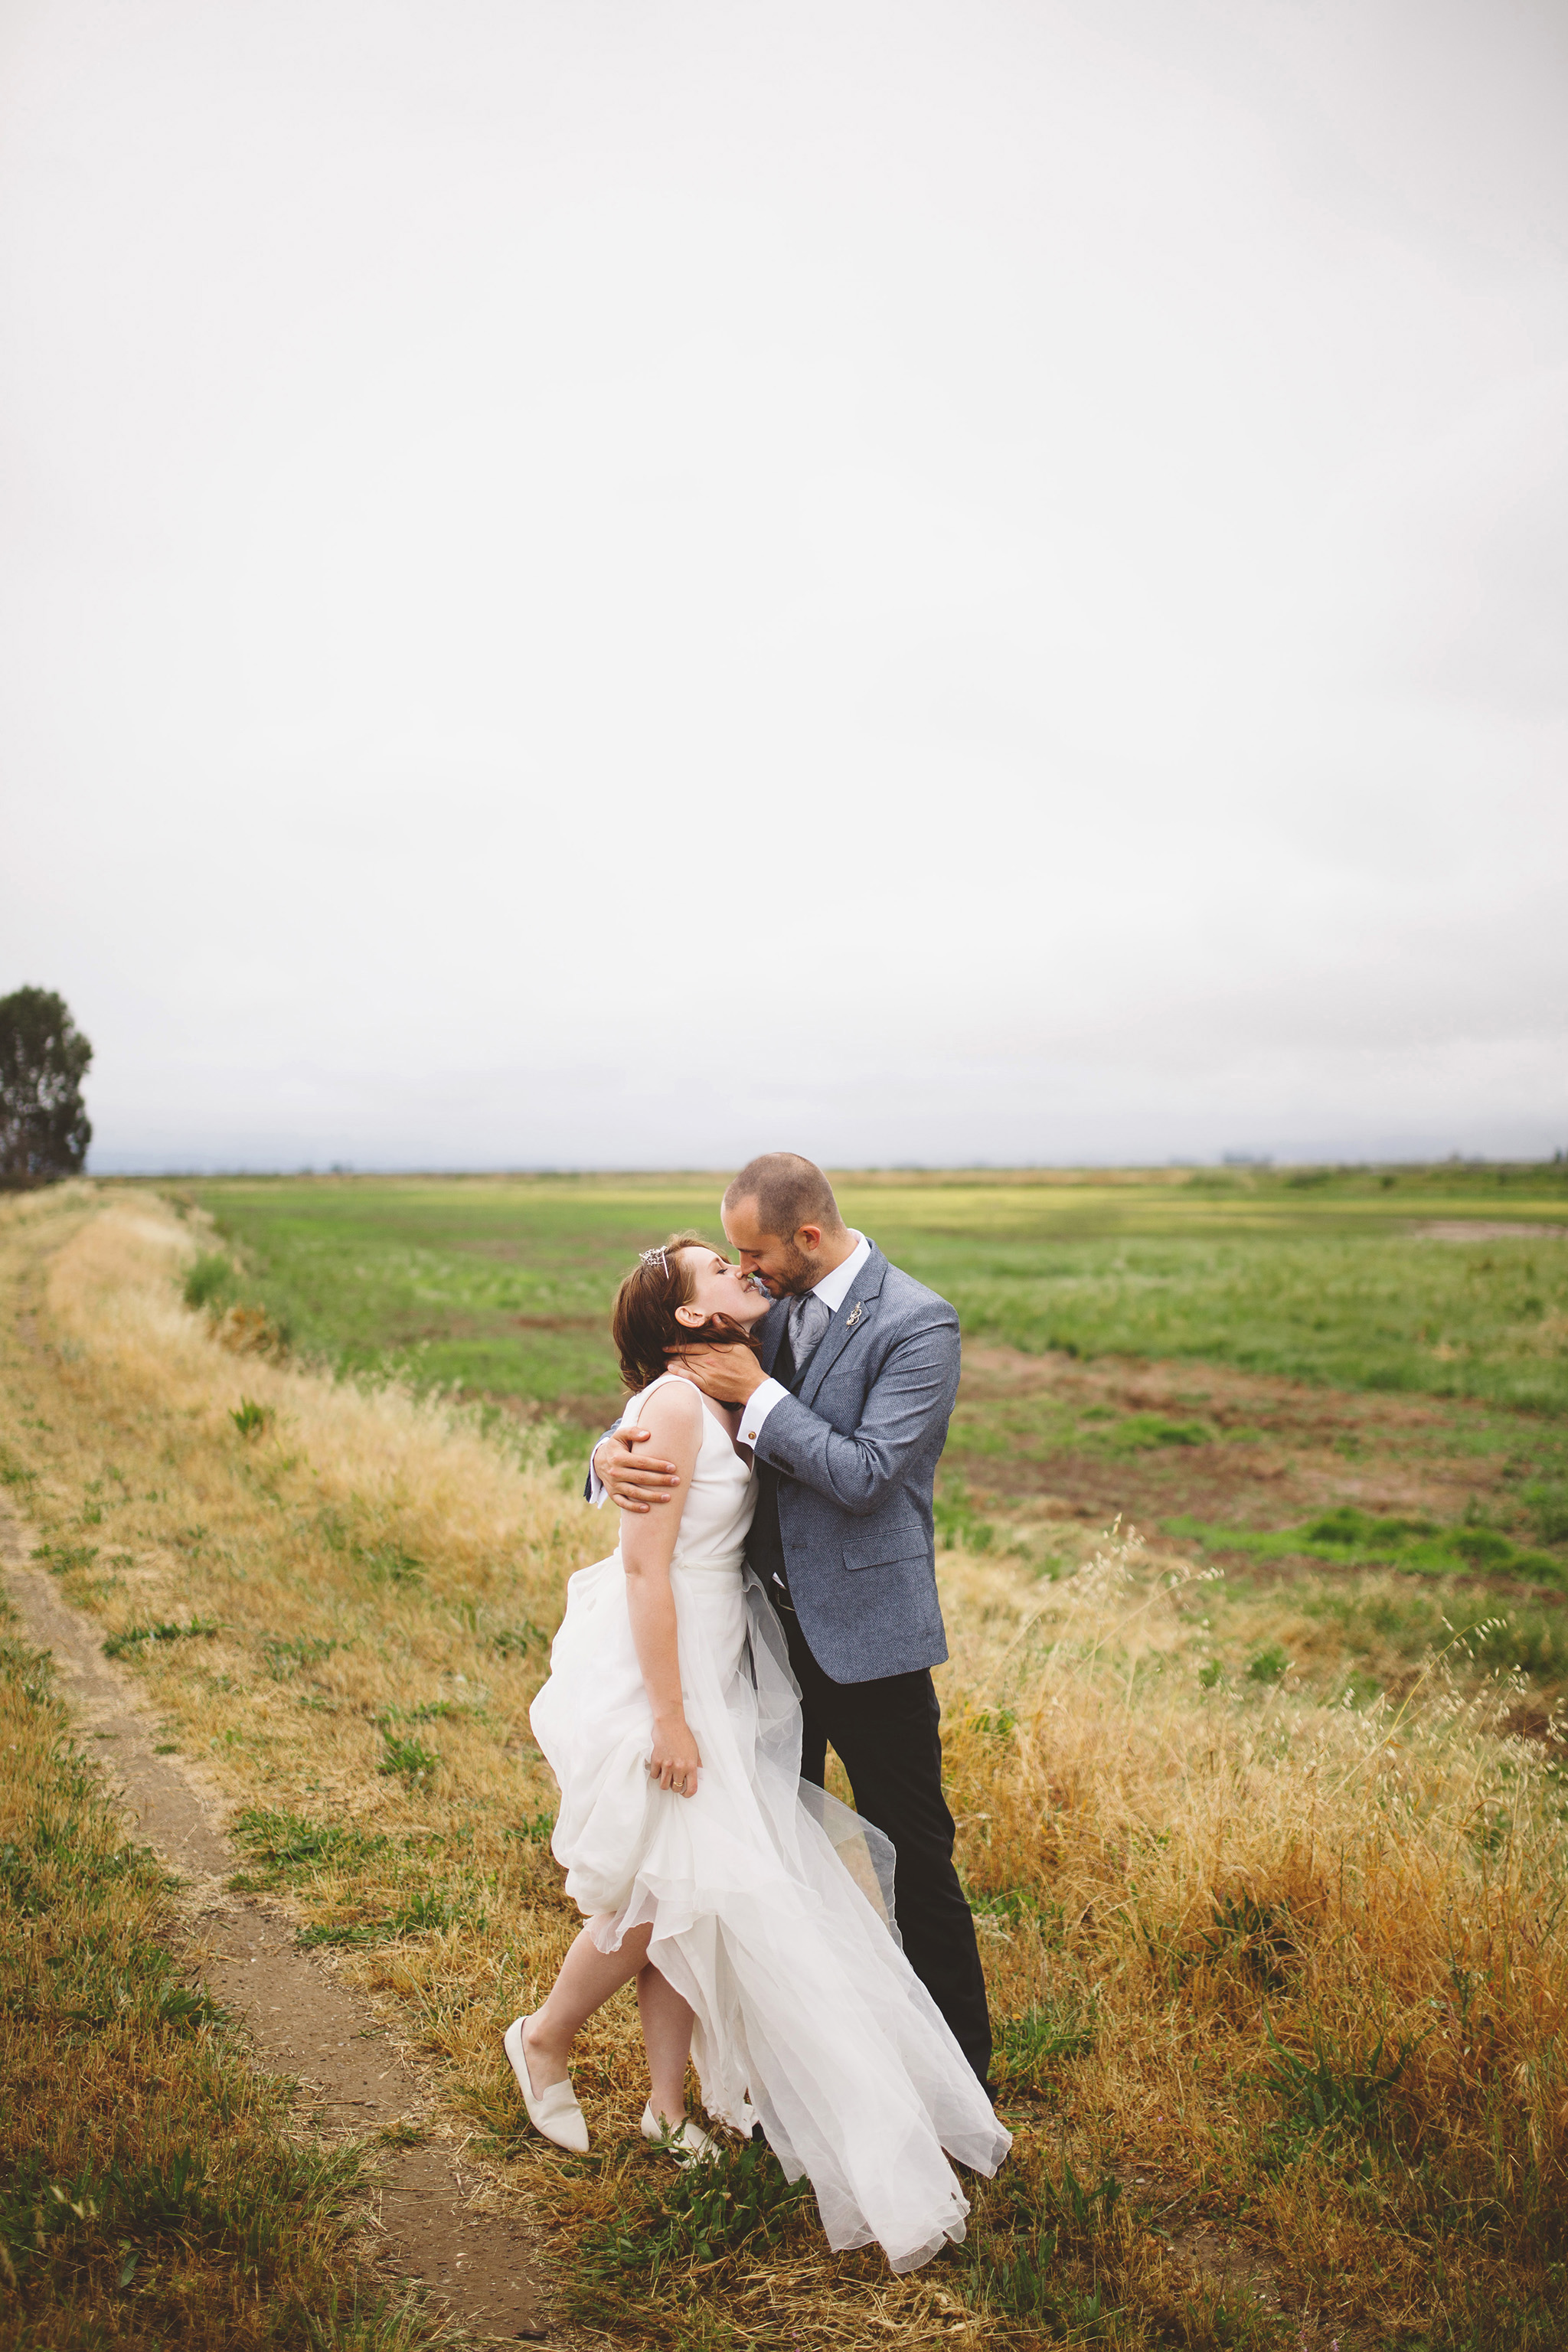 Bay area wedding pictures